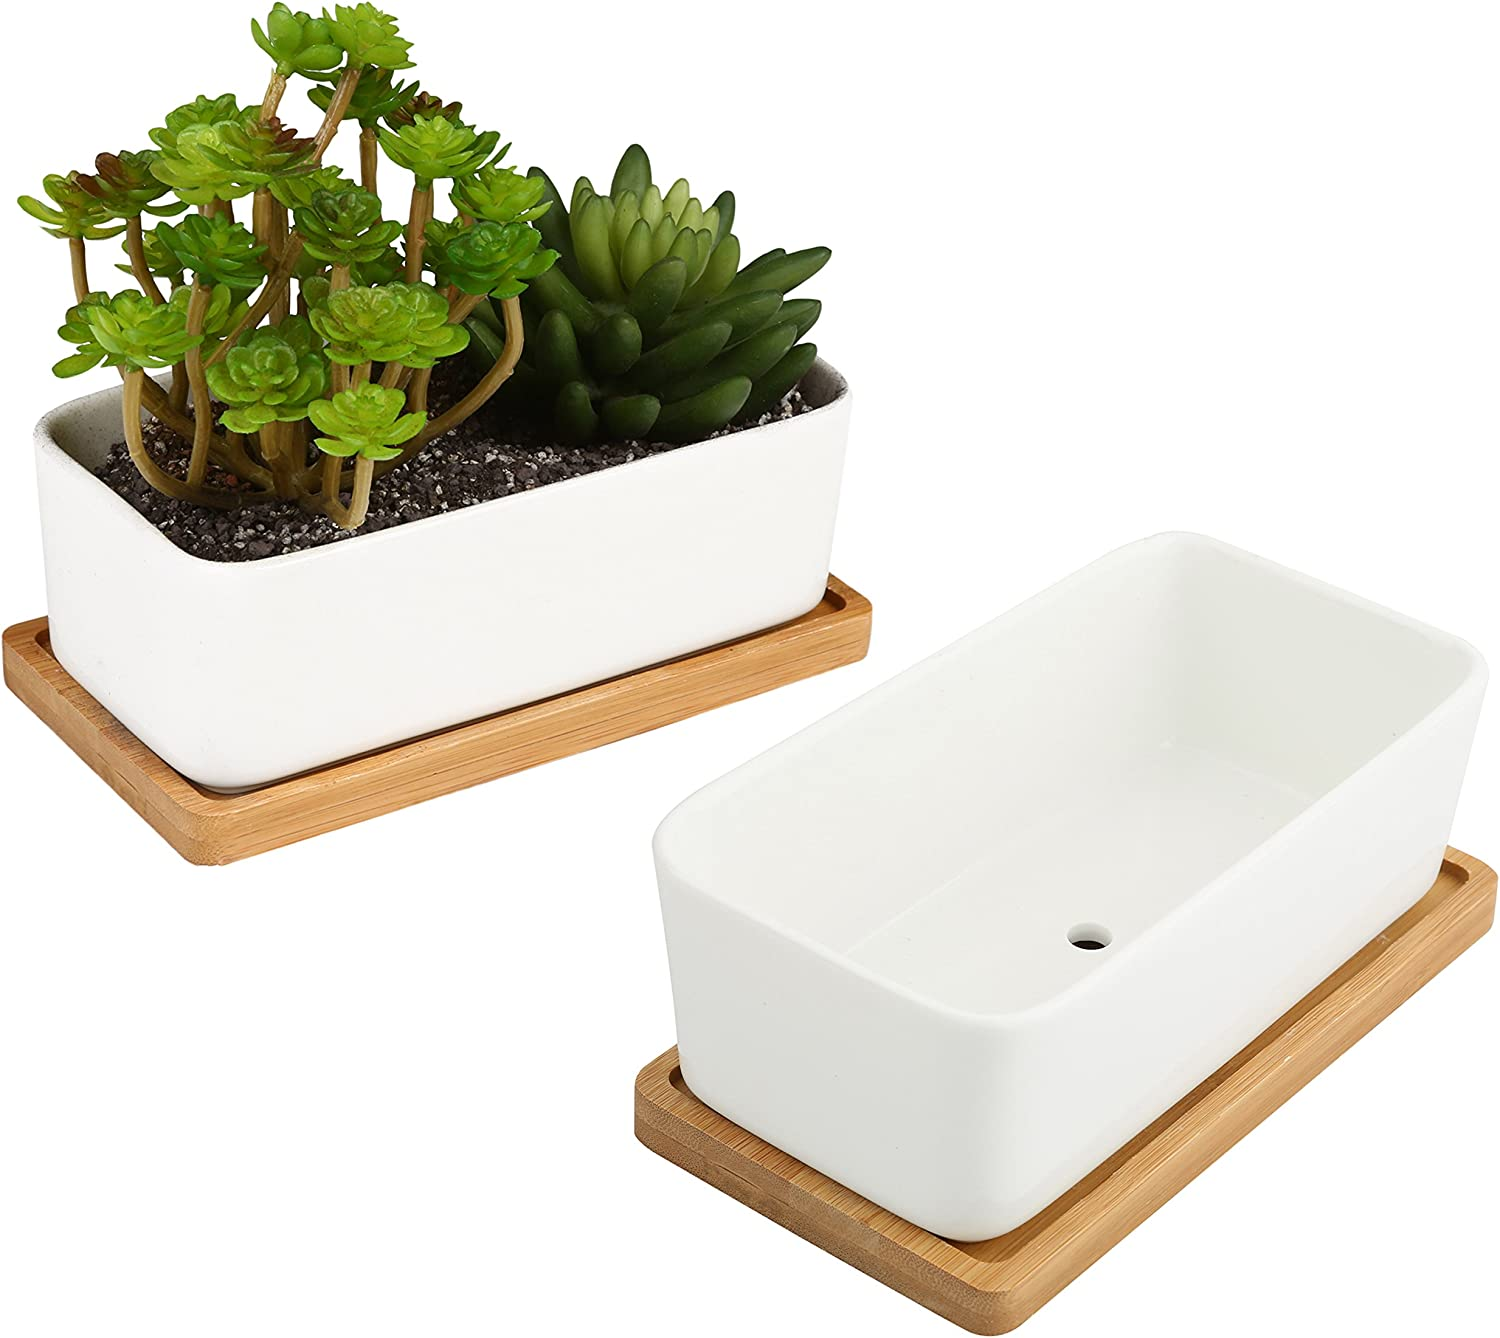 White Ceramic Rectangular Succulent Planters with Removable Bamboo Saucers, Set of 2